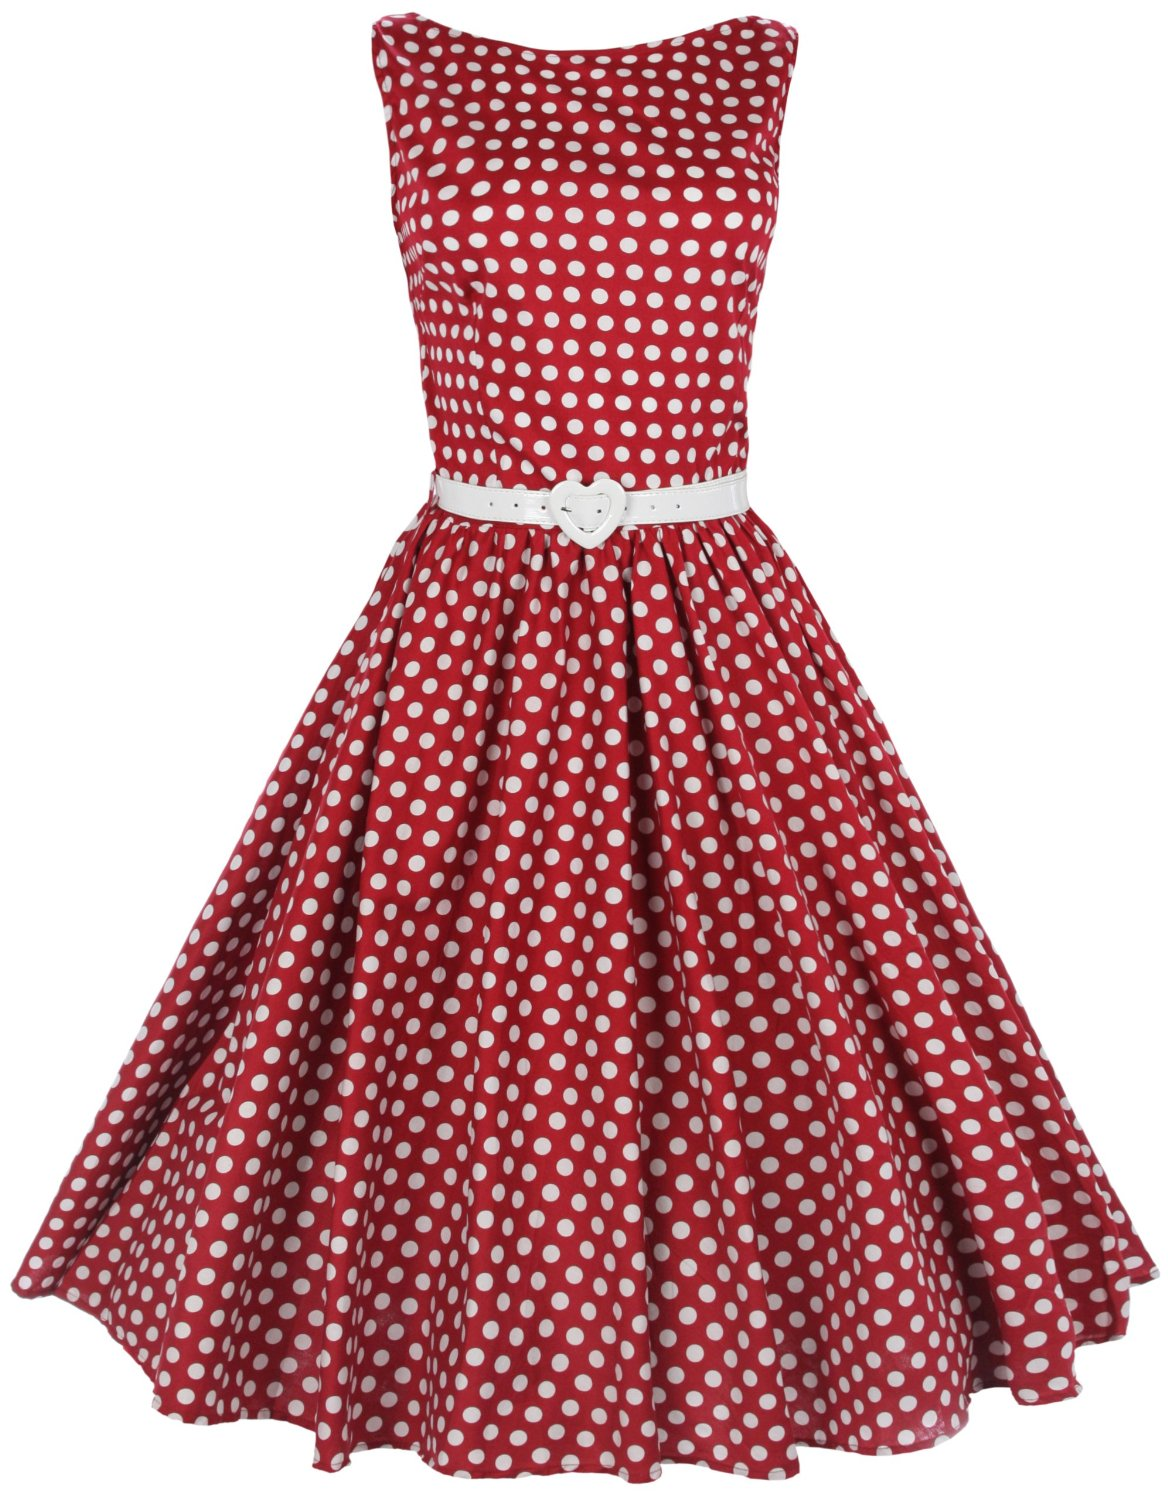 Retro Red Dress with Dots 53.37 Kb